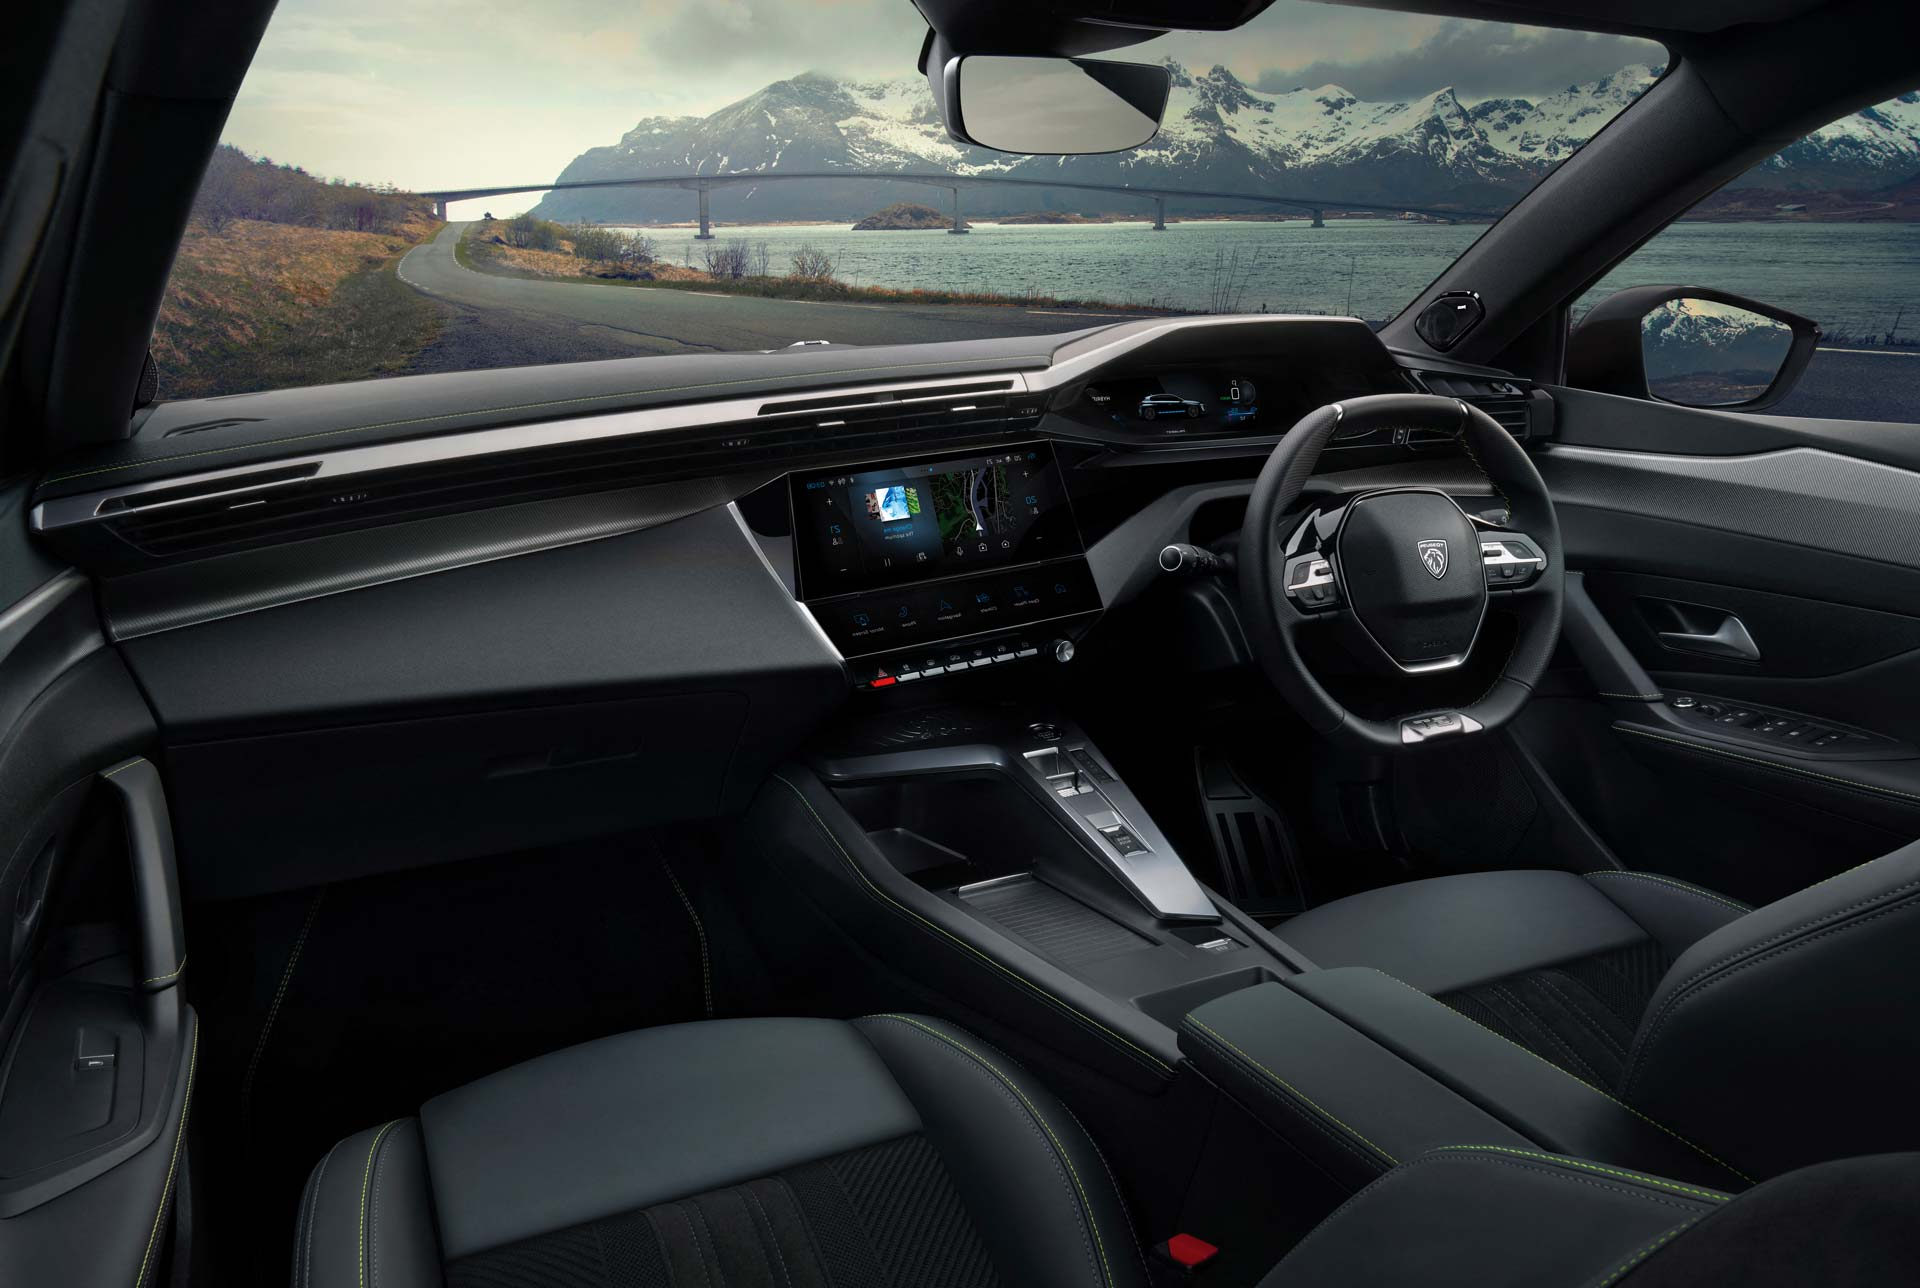 new-peugeot-308-interior-detailed